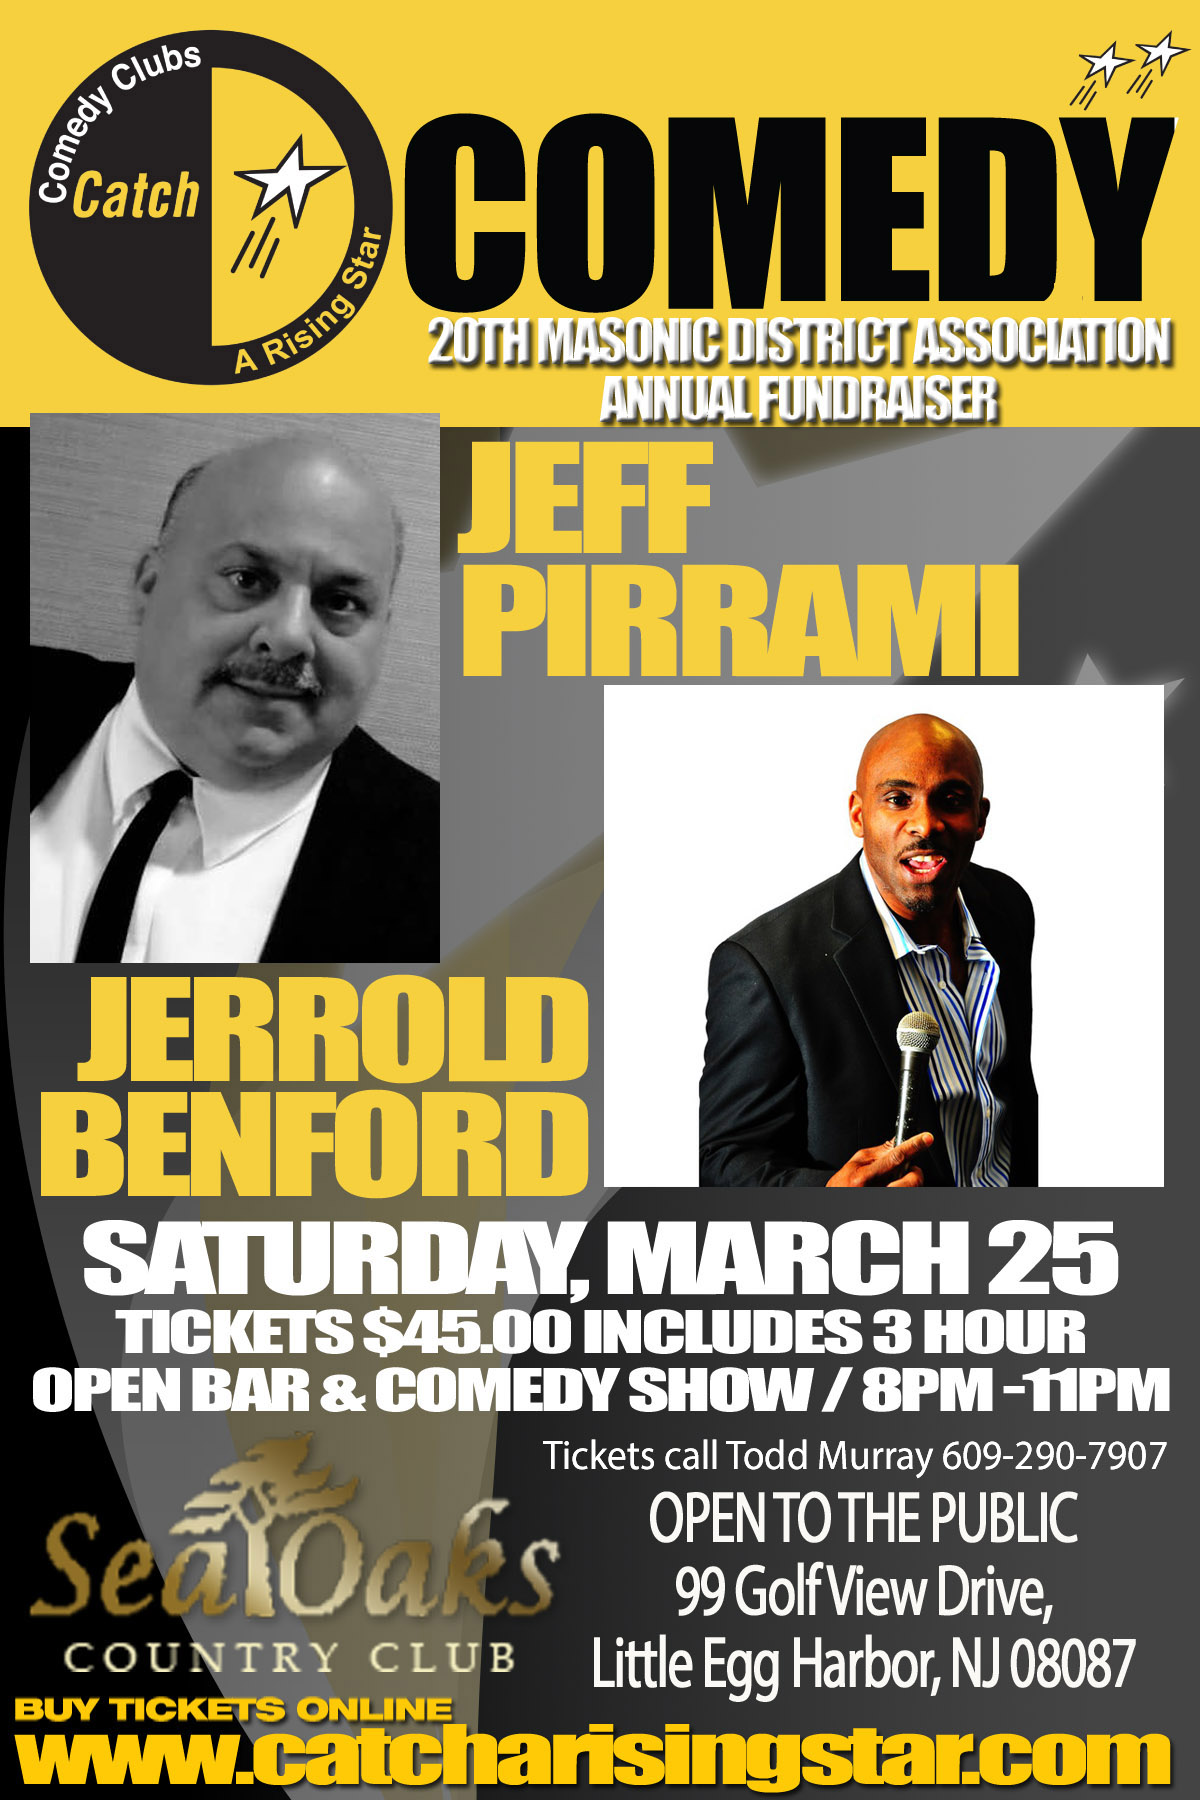 Jeff Pirrami and Jerrold Benford / For tickets call Todd Murray 609-290-7907